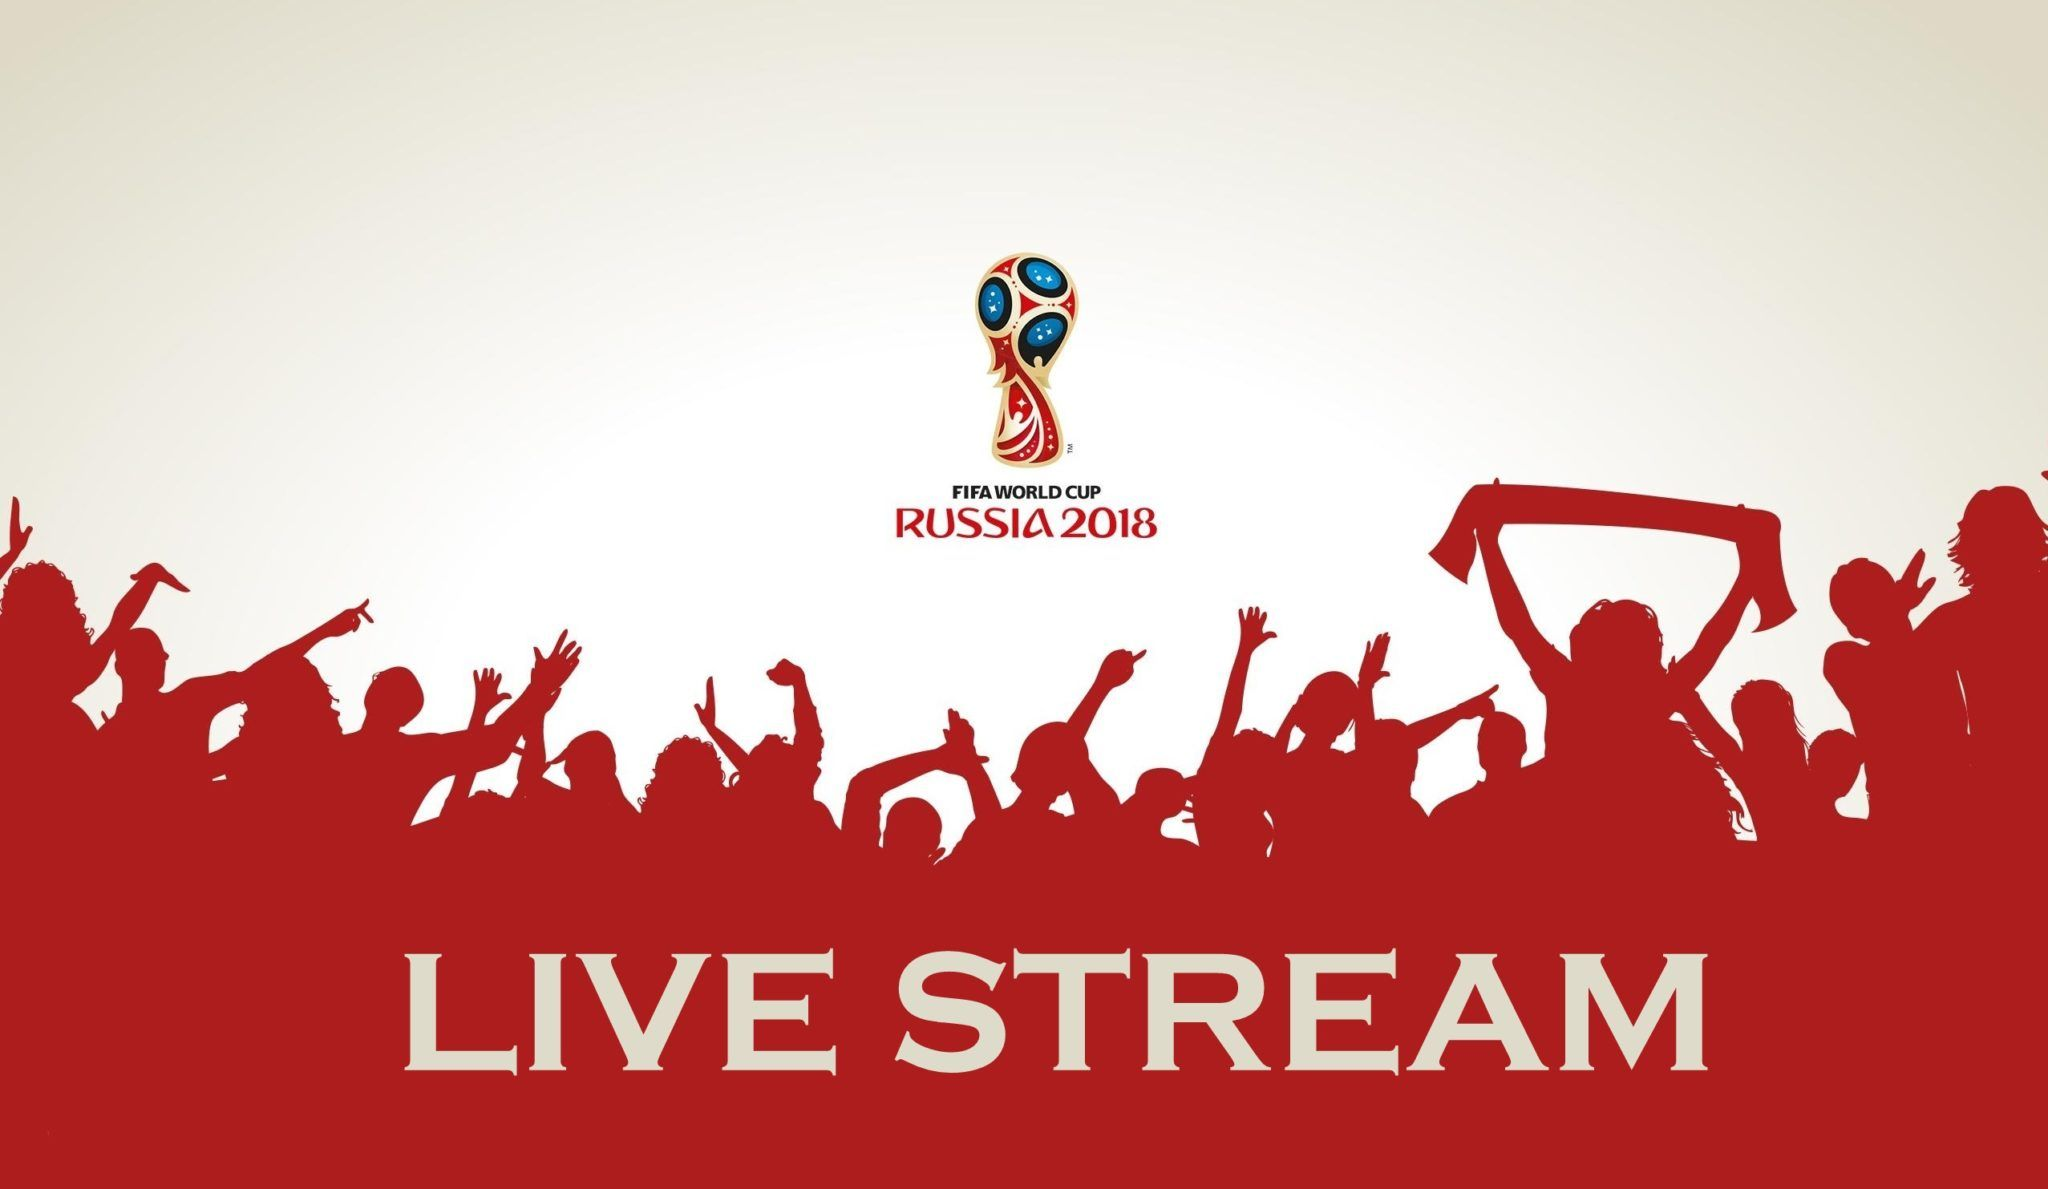 Pin By Jahidrafi On Live Stream Free World Cup Live Fifa World Cup World Cup